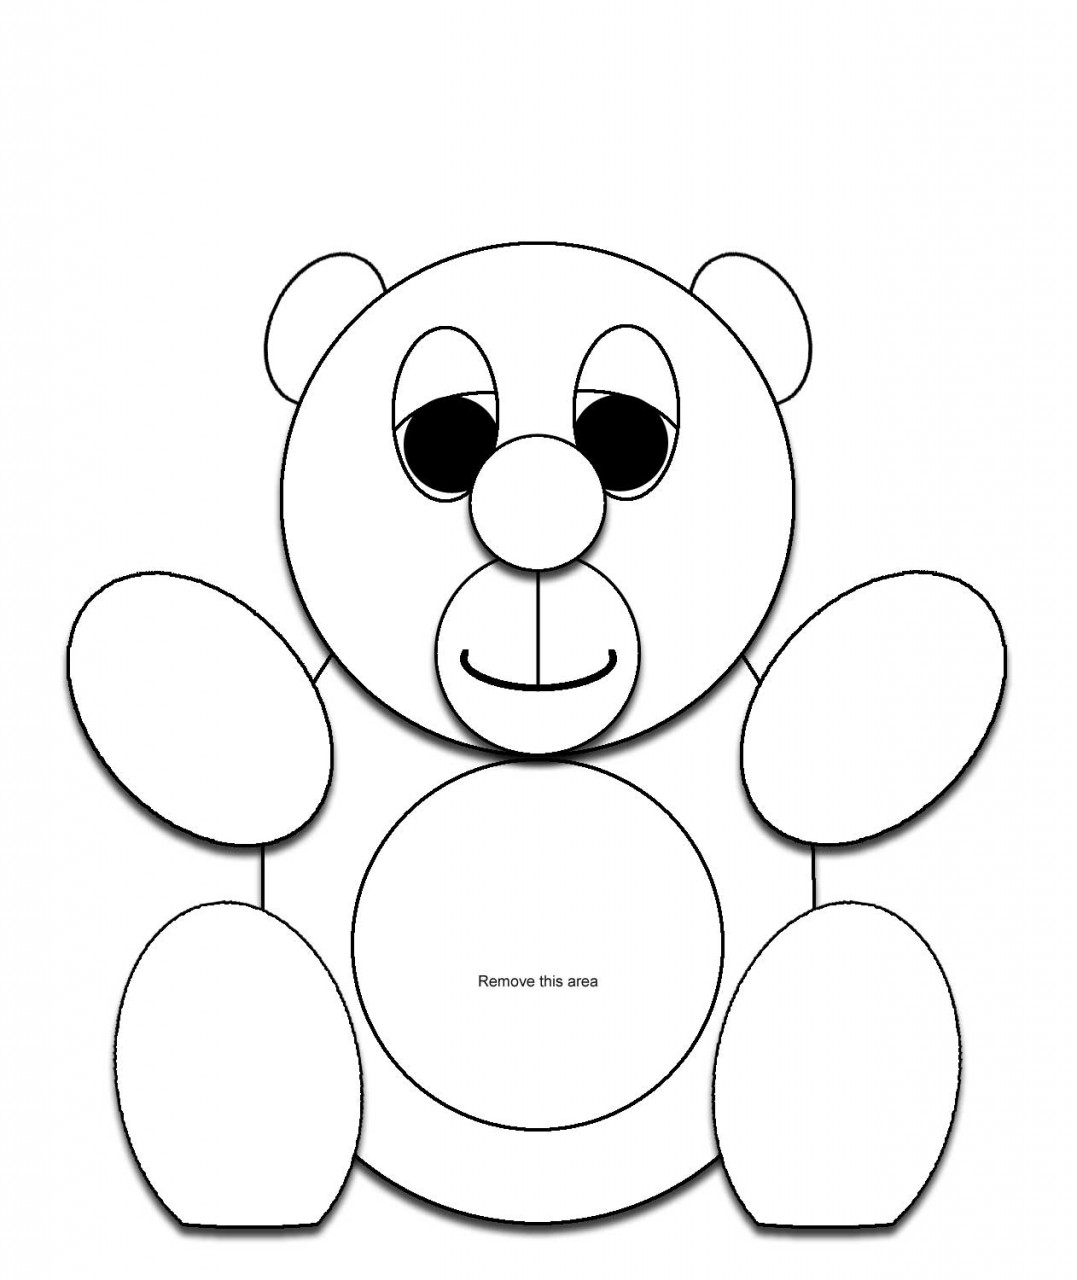 name the bear template - bear head template clipart best